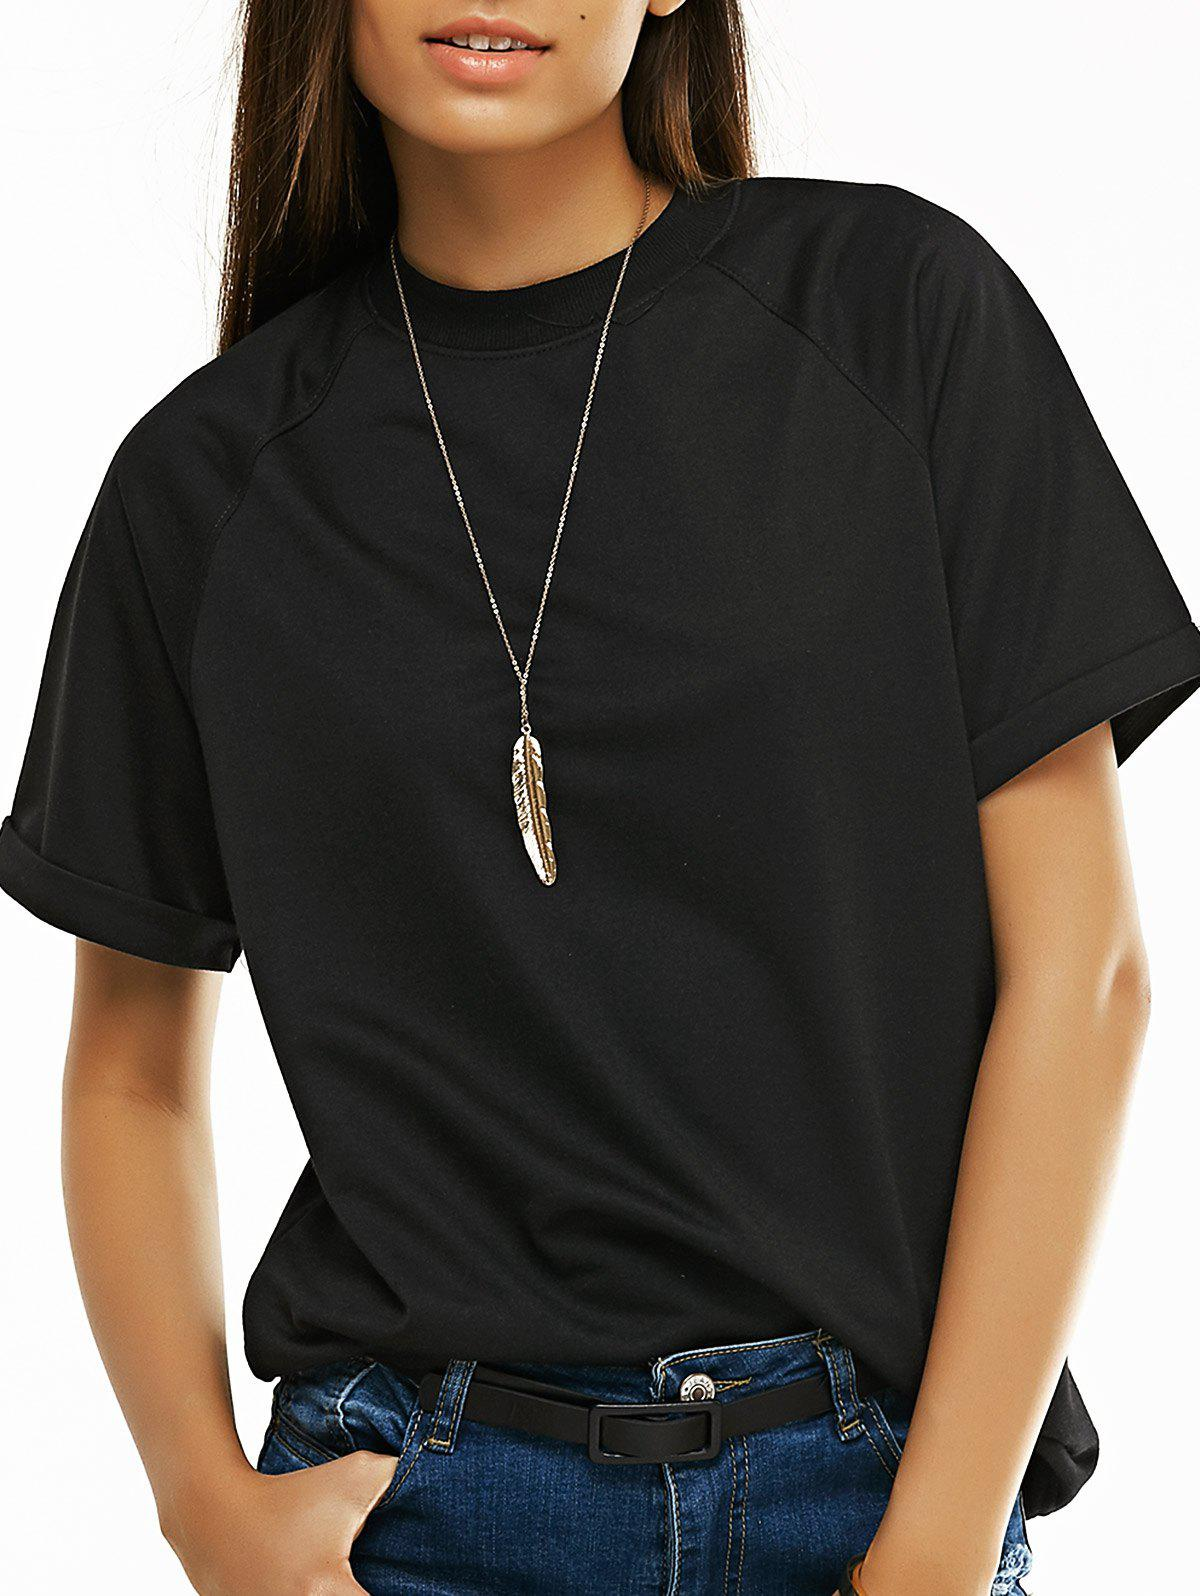 Candy Color Short Sleeve T-Shirt - BLACK XL